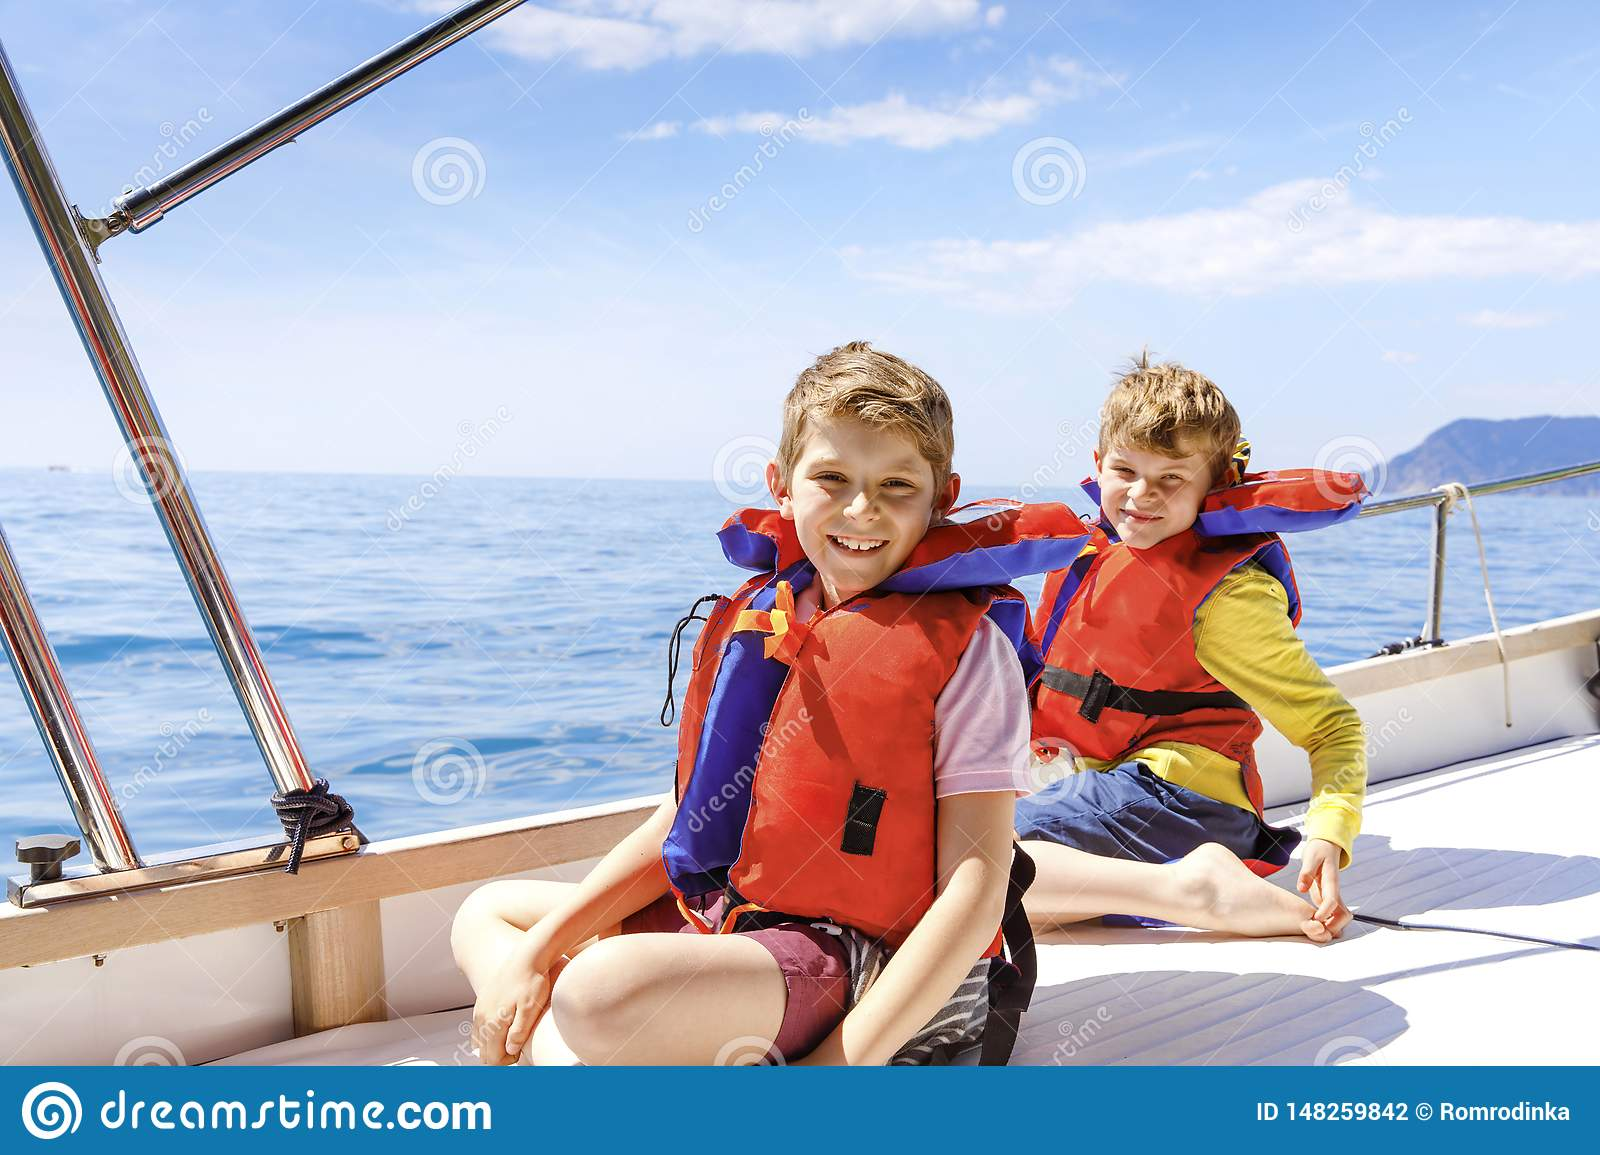 Two little kid boys, best friends enjoying sailing boat trip. Family vacations on ocean or sea on sunny day. Children